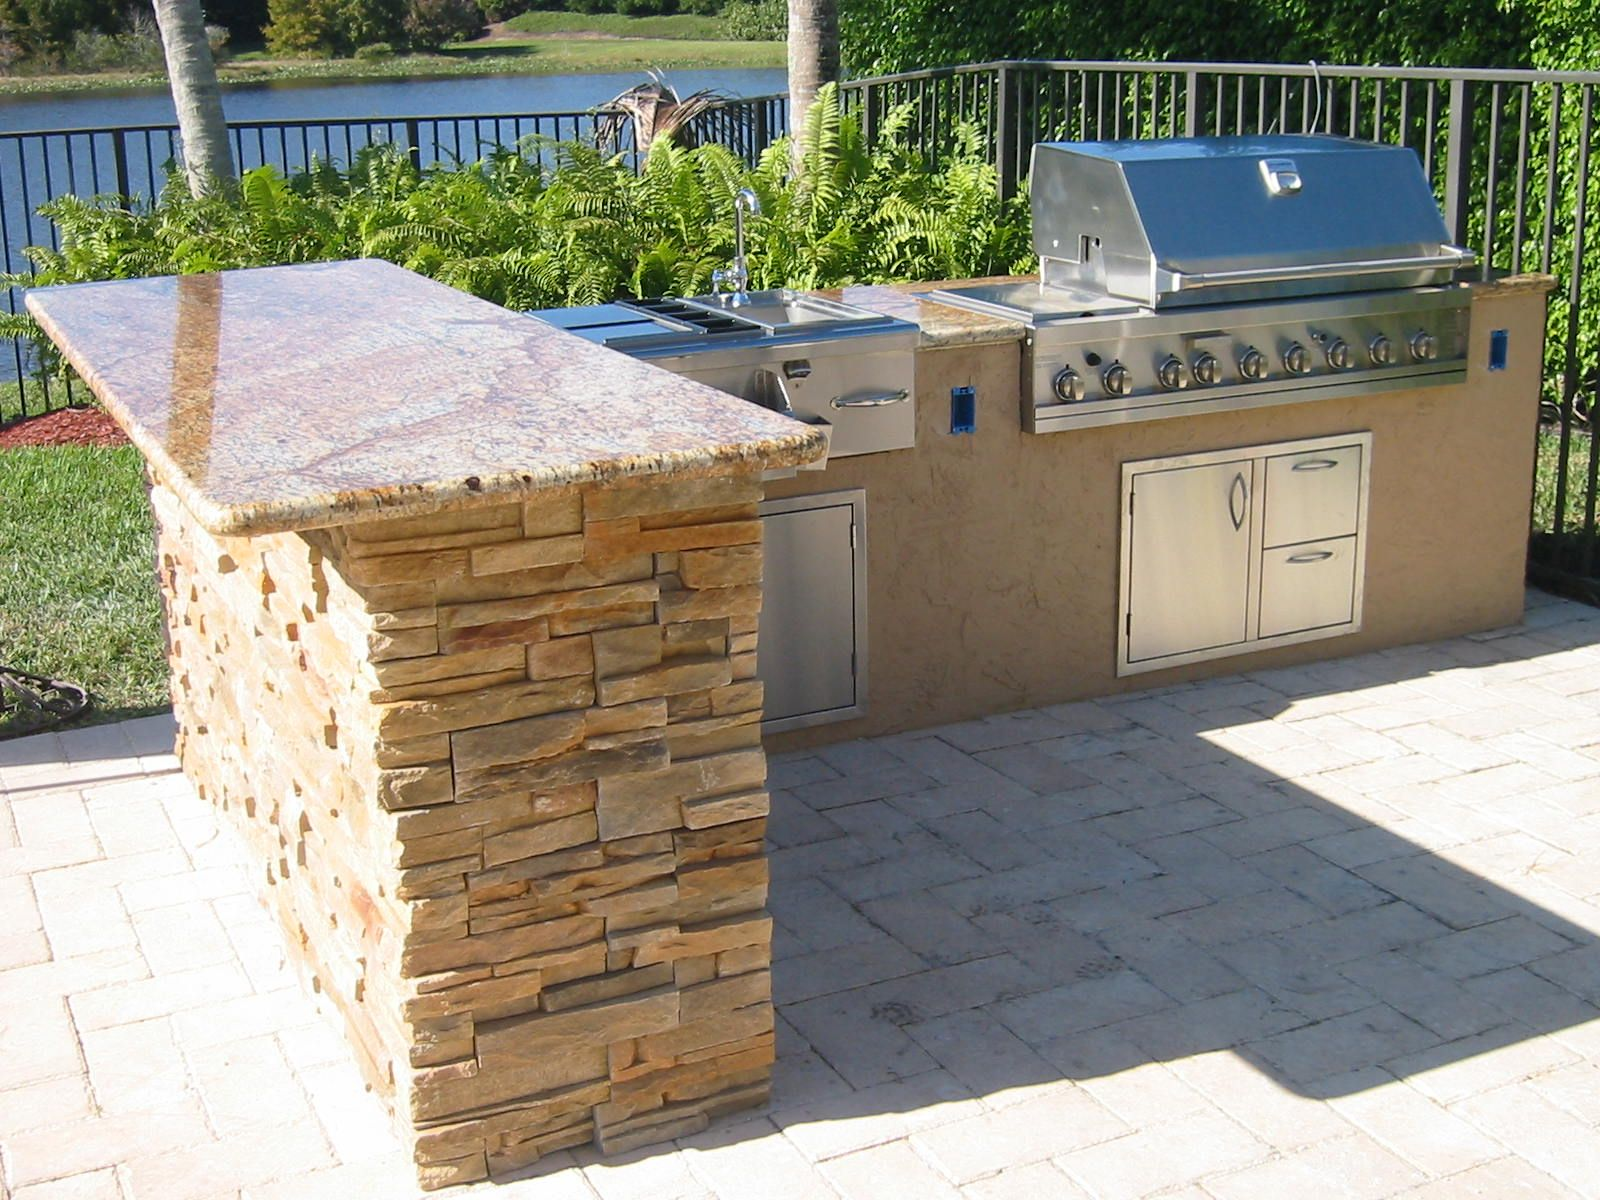 Outdoor Grill Islands Custom Outdoor Kitchen In Florida With Granite And Ledge Stone And Bar